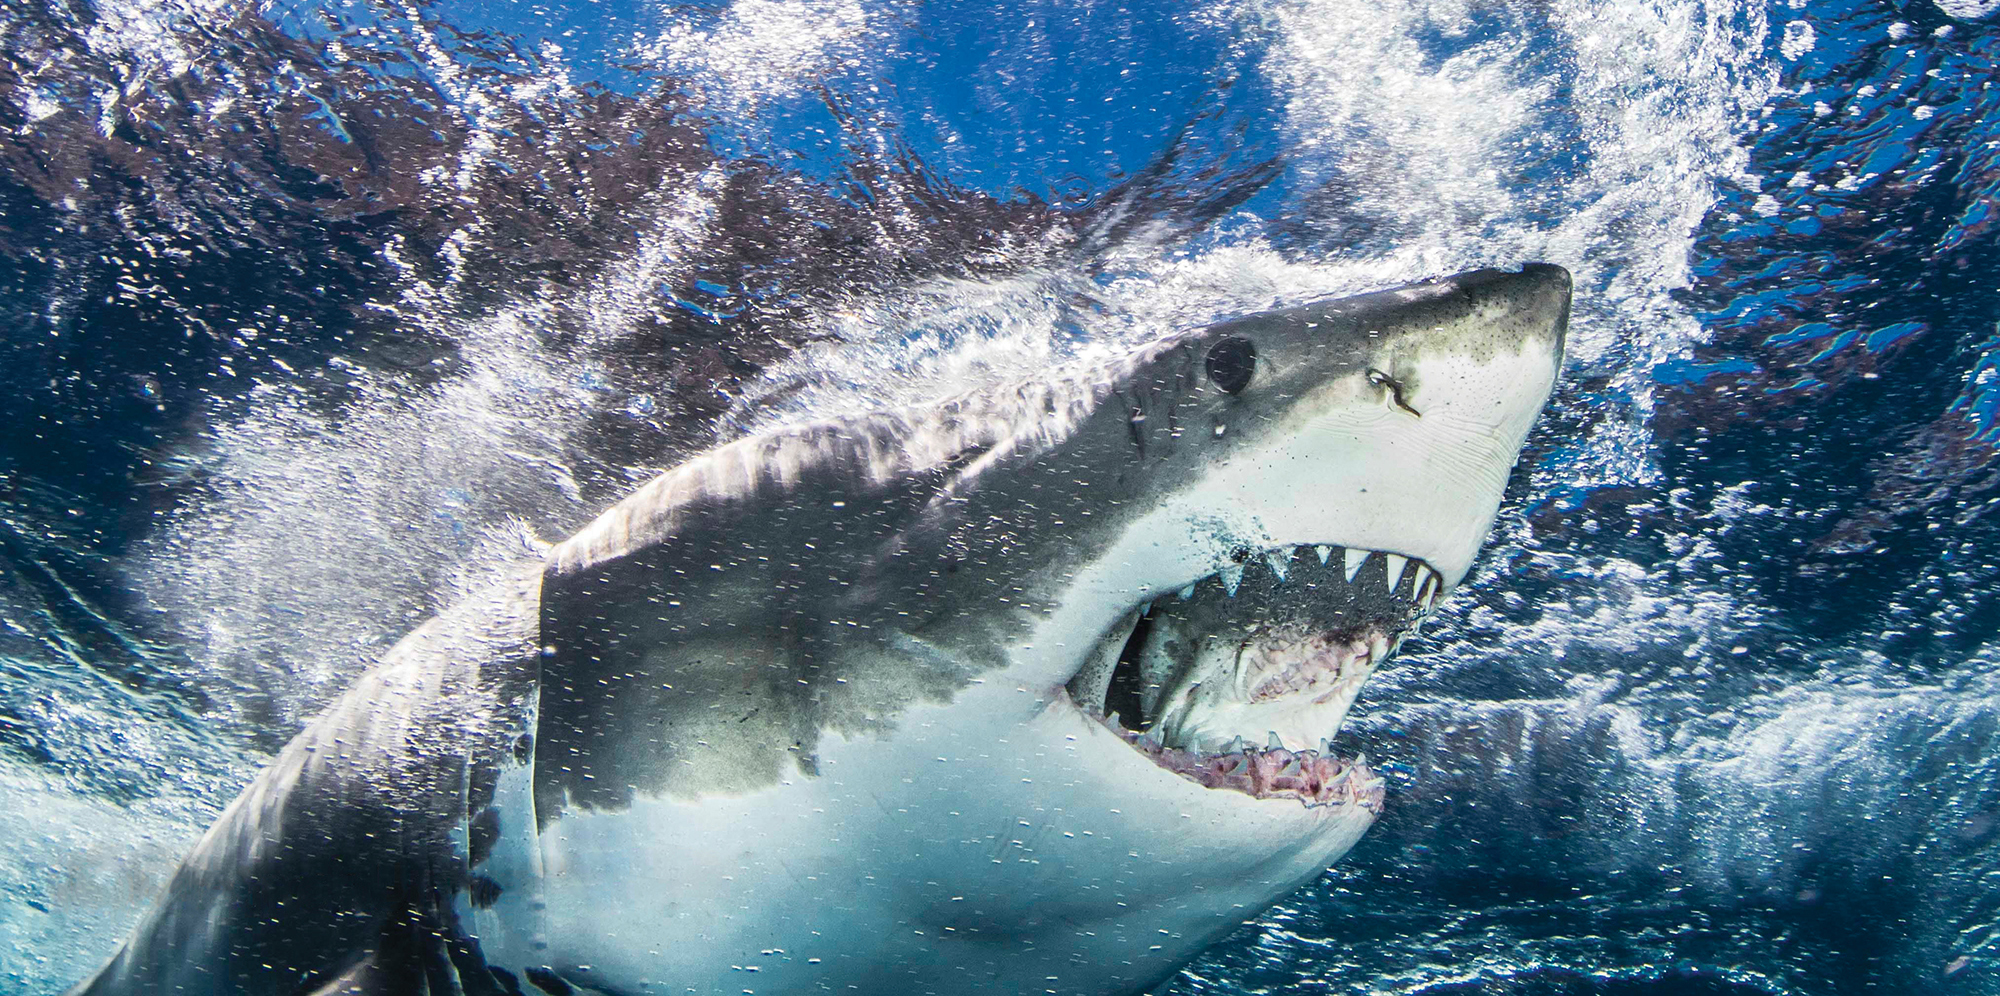 Shark Misconceptions, Photo By Craig Dietrich